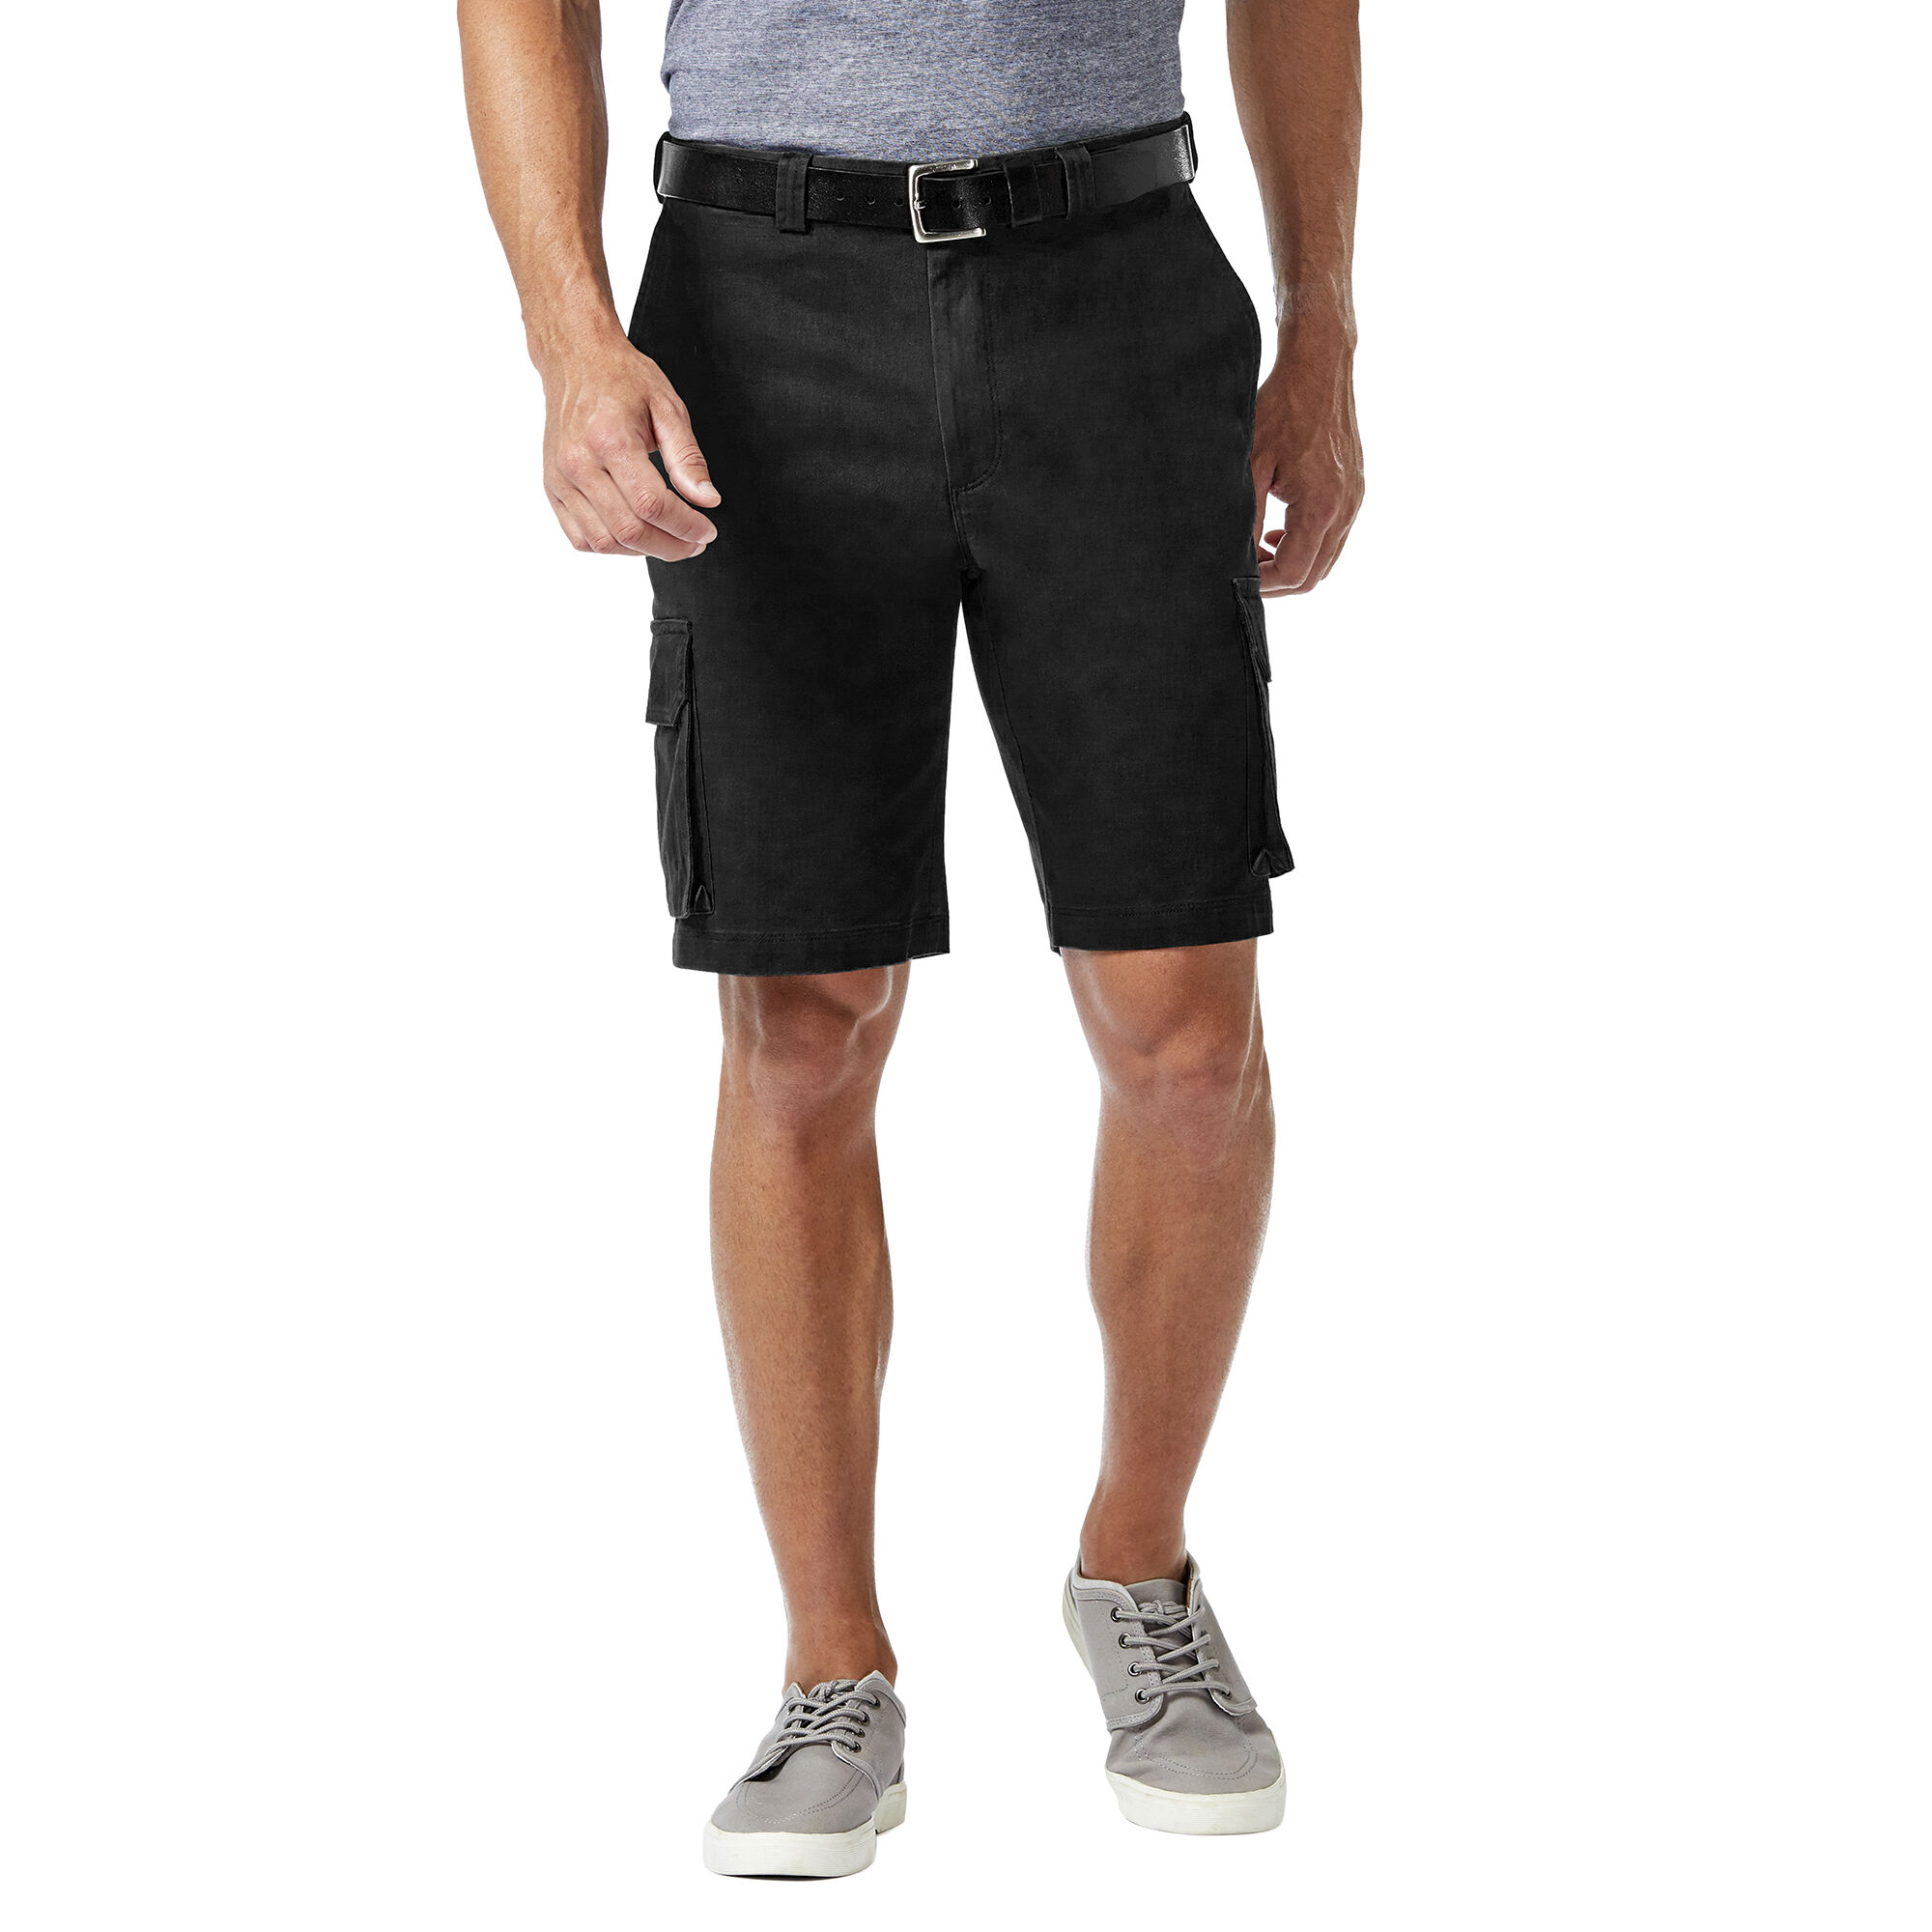 f75c6eb92b Stretch Cargo Short w/ Tech Pocket,